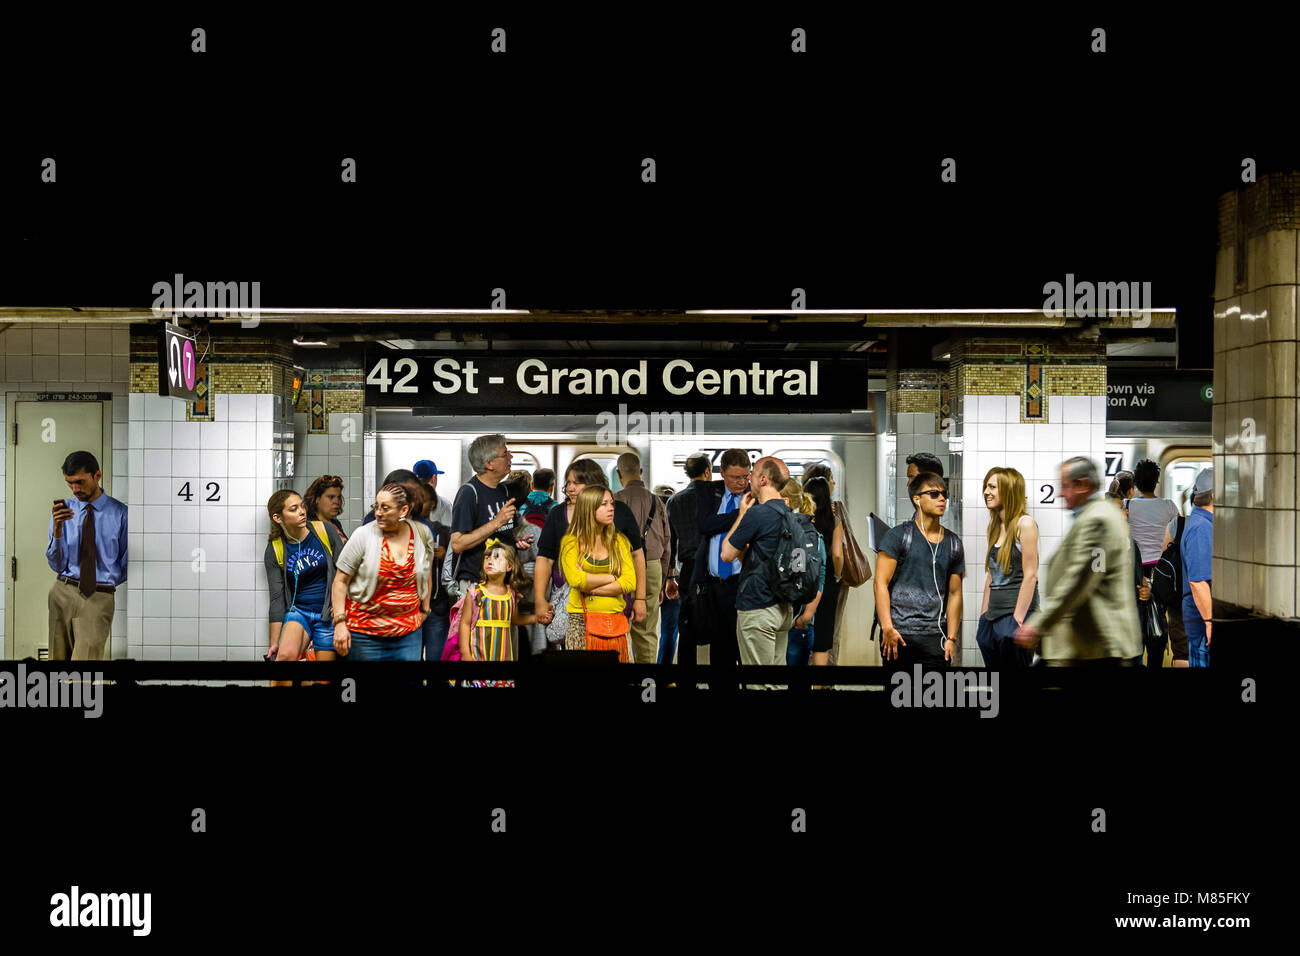 People on waiting for a subway train on 42nd street station , New York City - Stock Image